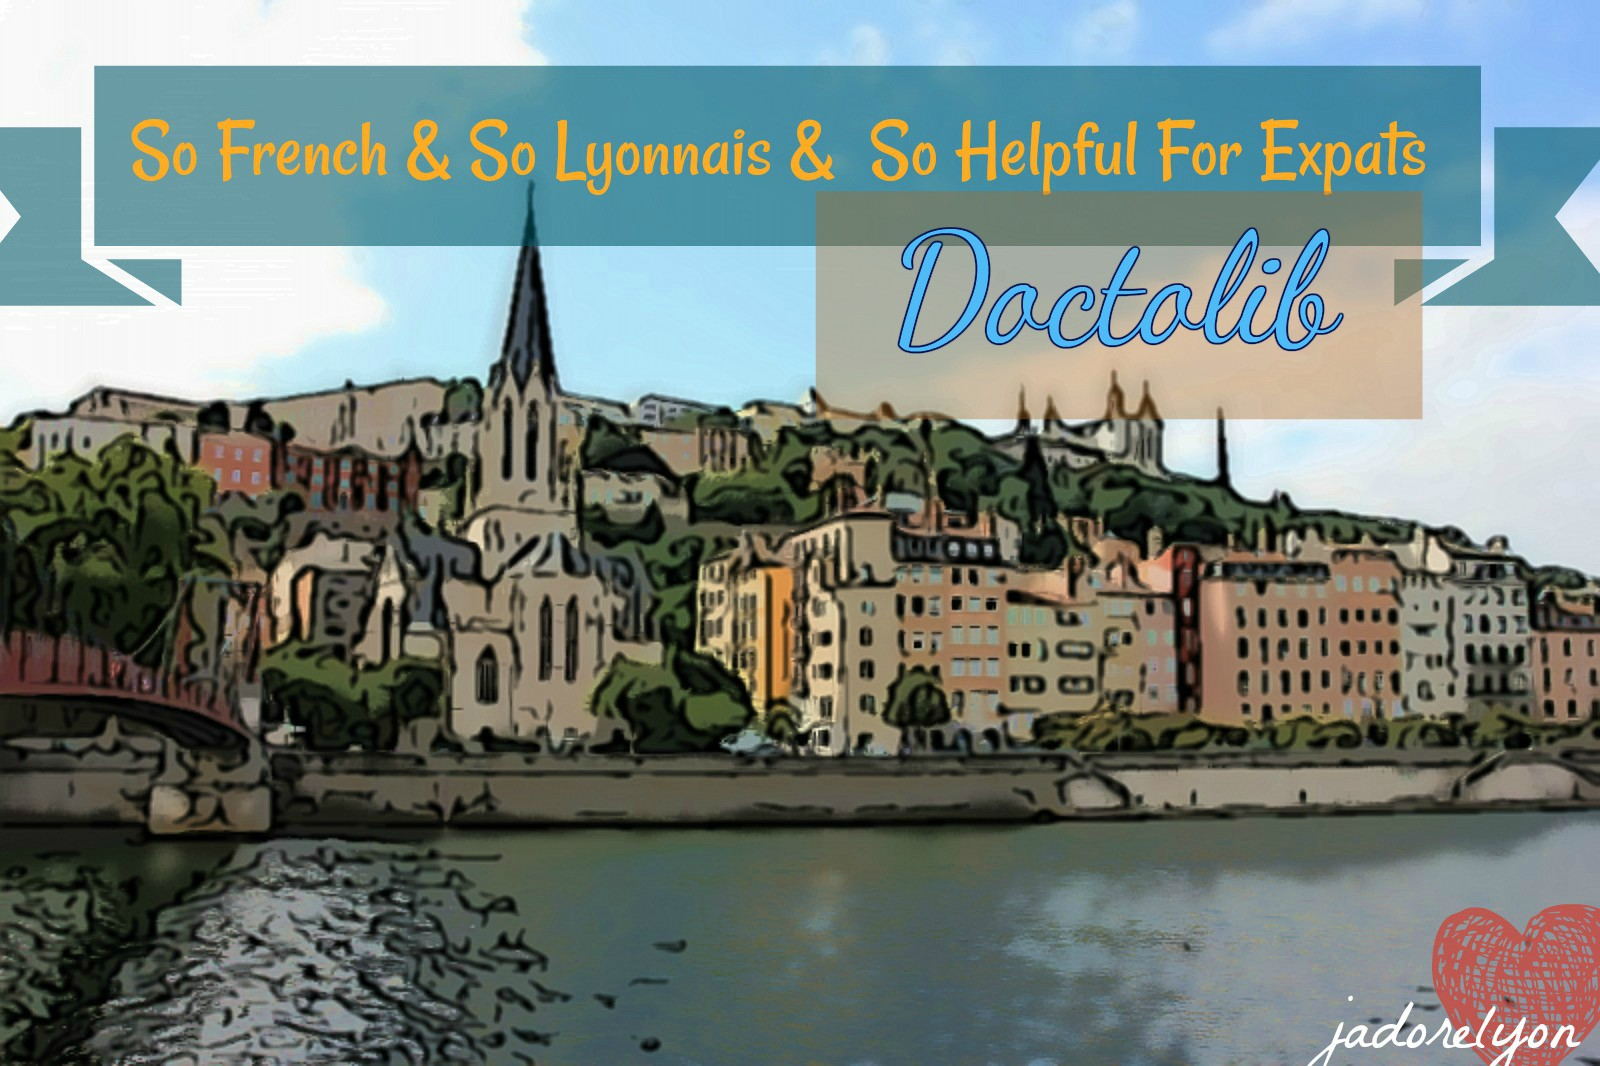 Let me present you so French and So useful for Expats, Tourists and Lyonnais - Doctolib